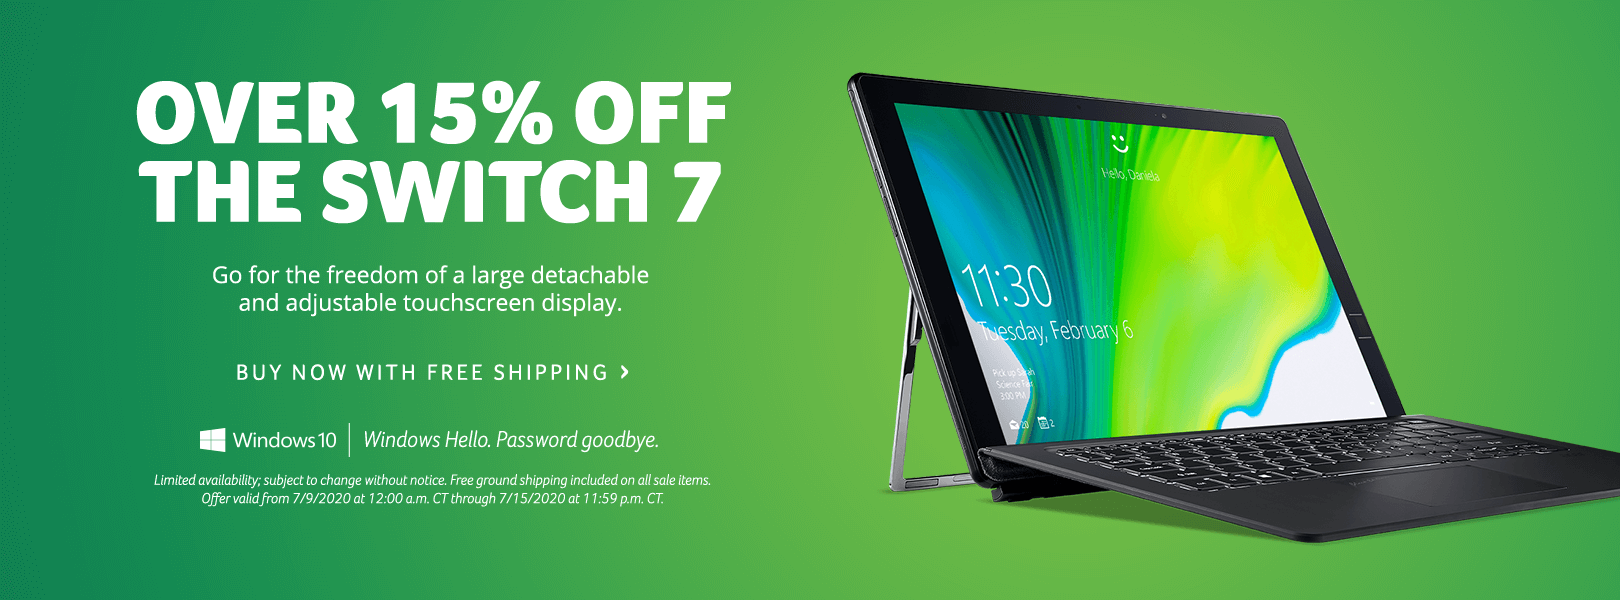 Save over 15% on the Switch 7 Laptop